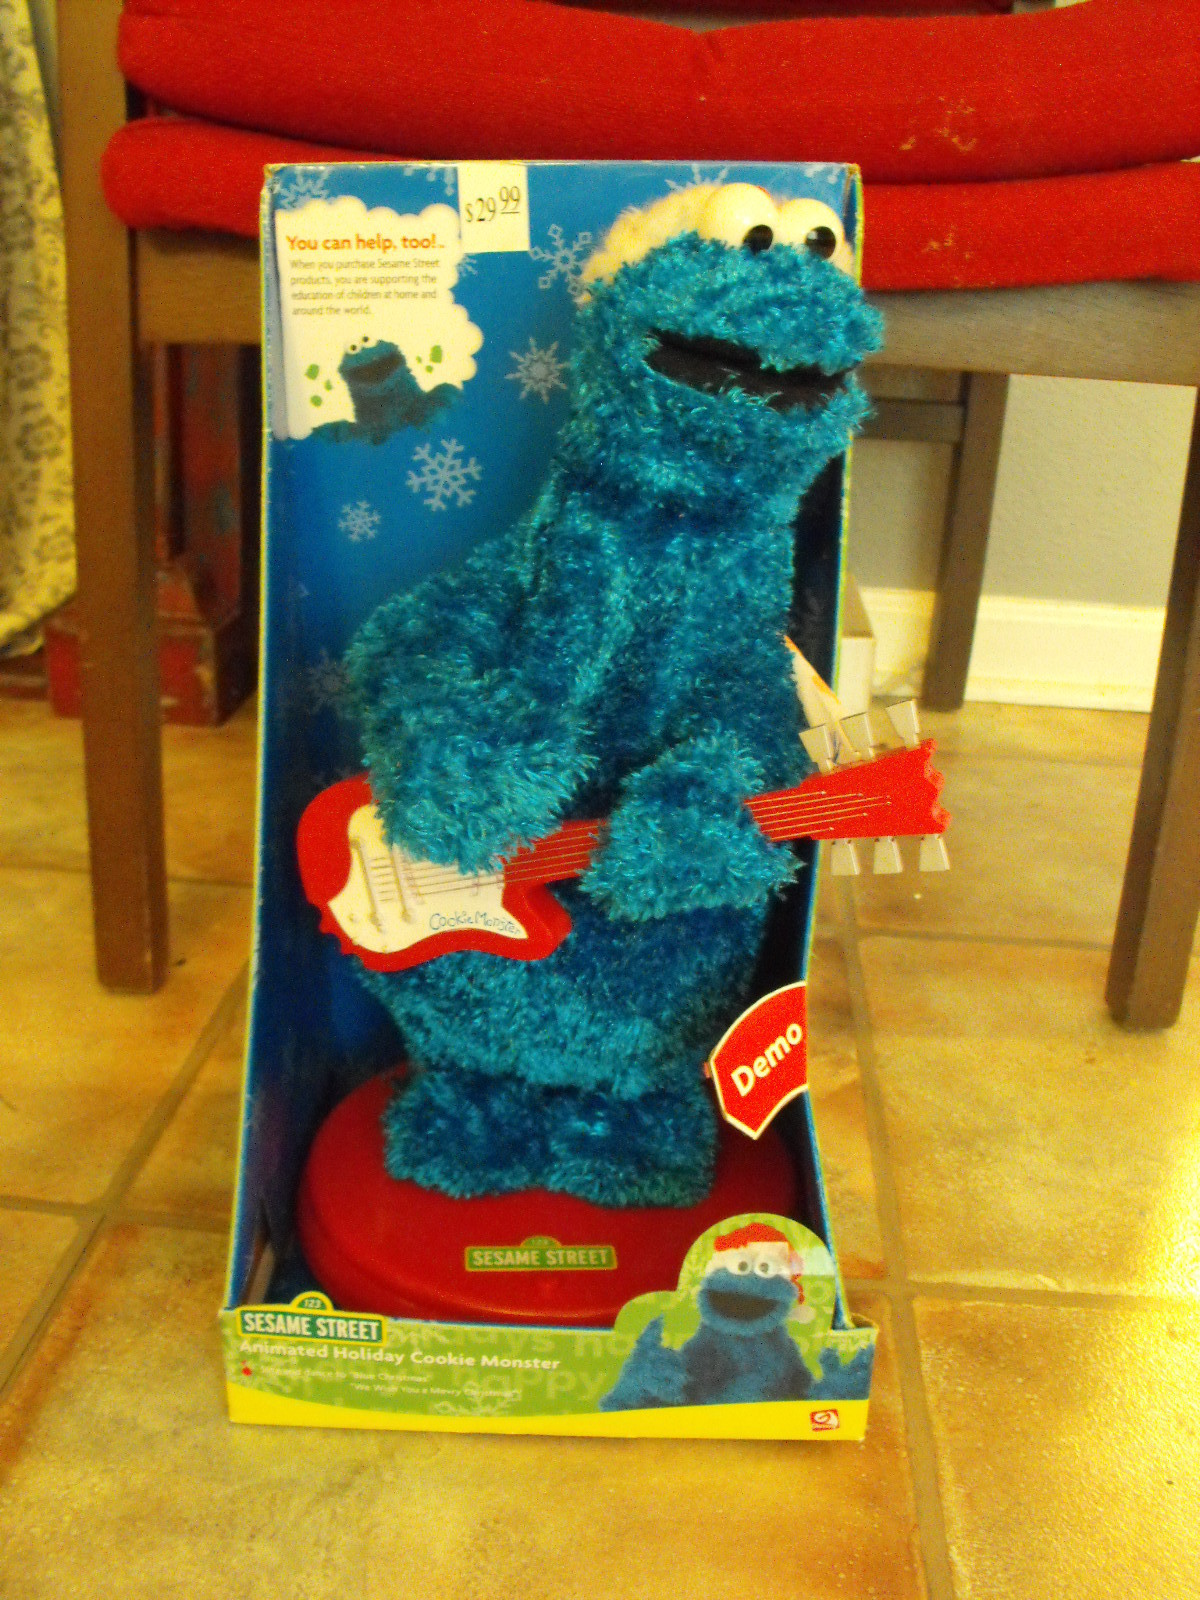 Animated Holiday Cookie Monster | Gemmy Wiki | FANDOM powered by Wikia